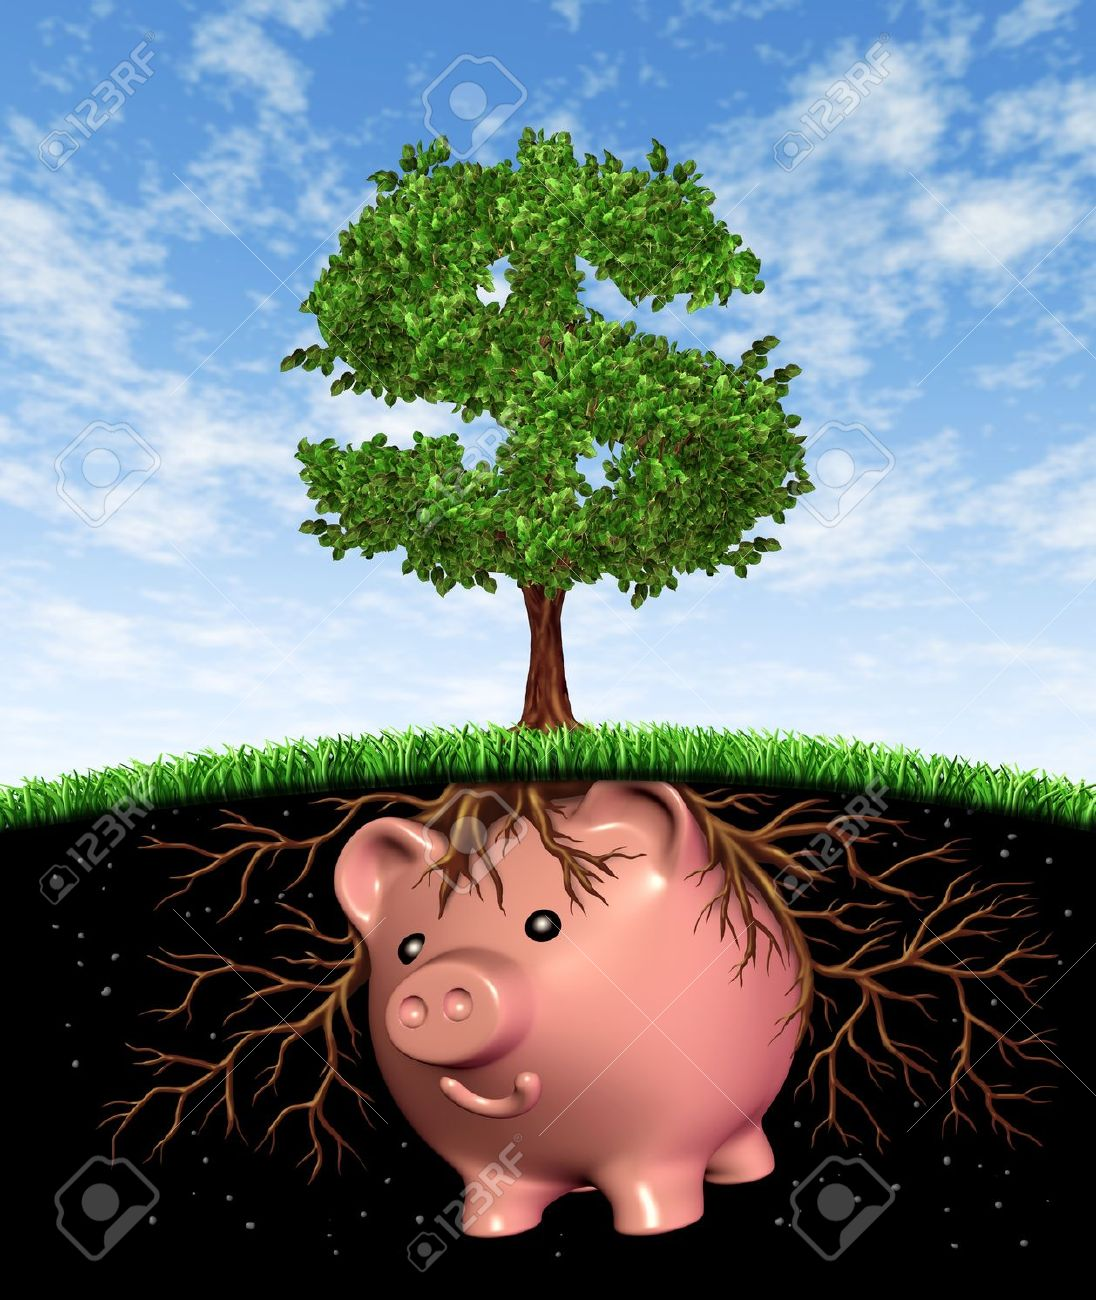 Finance Tree: Why You Should Reevaluate Your Mutual Funds Each Year